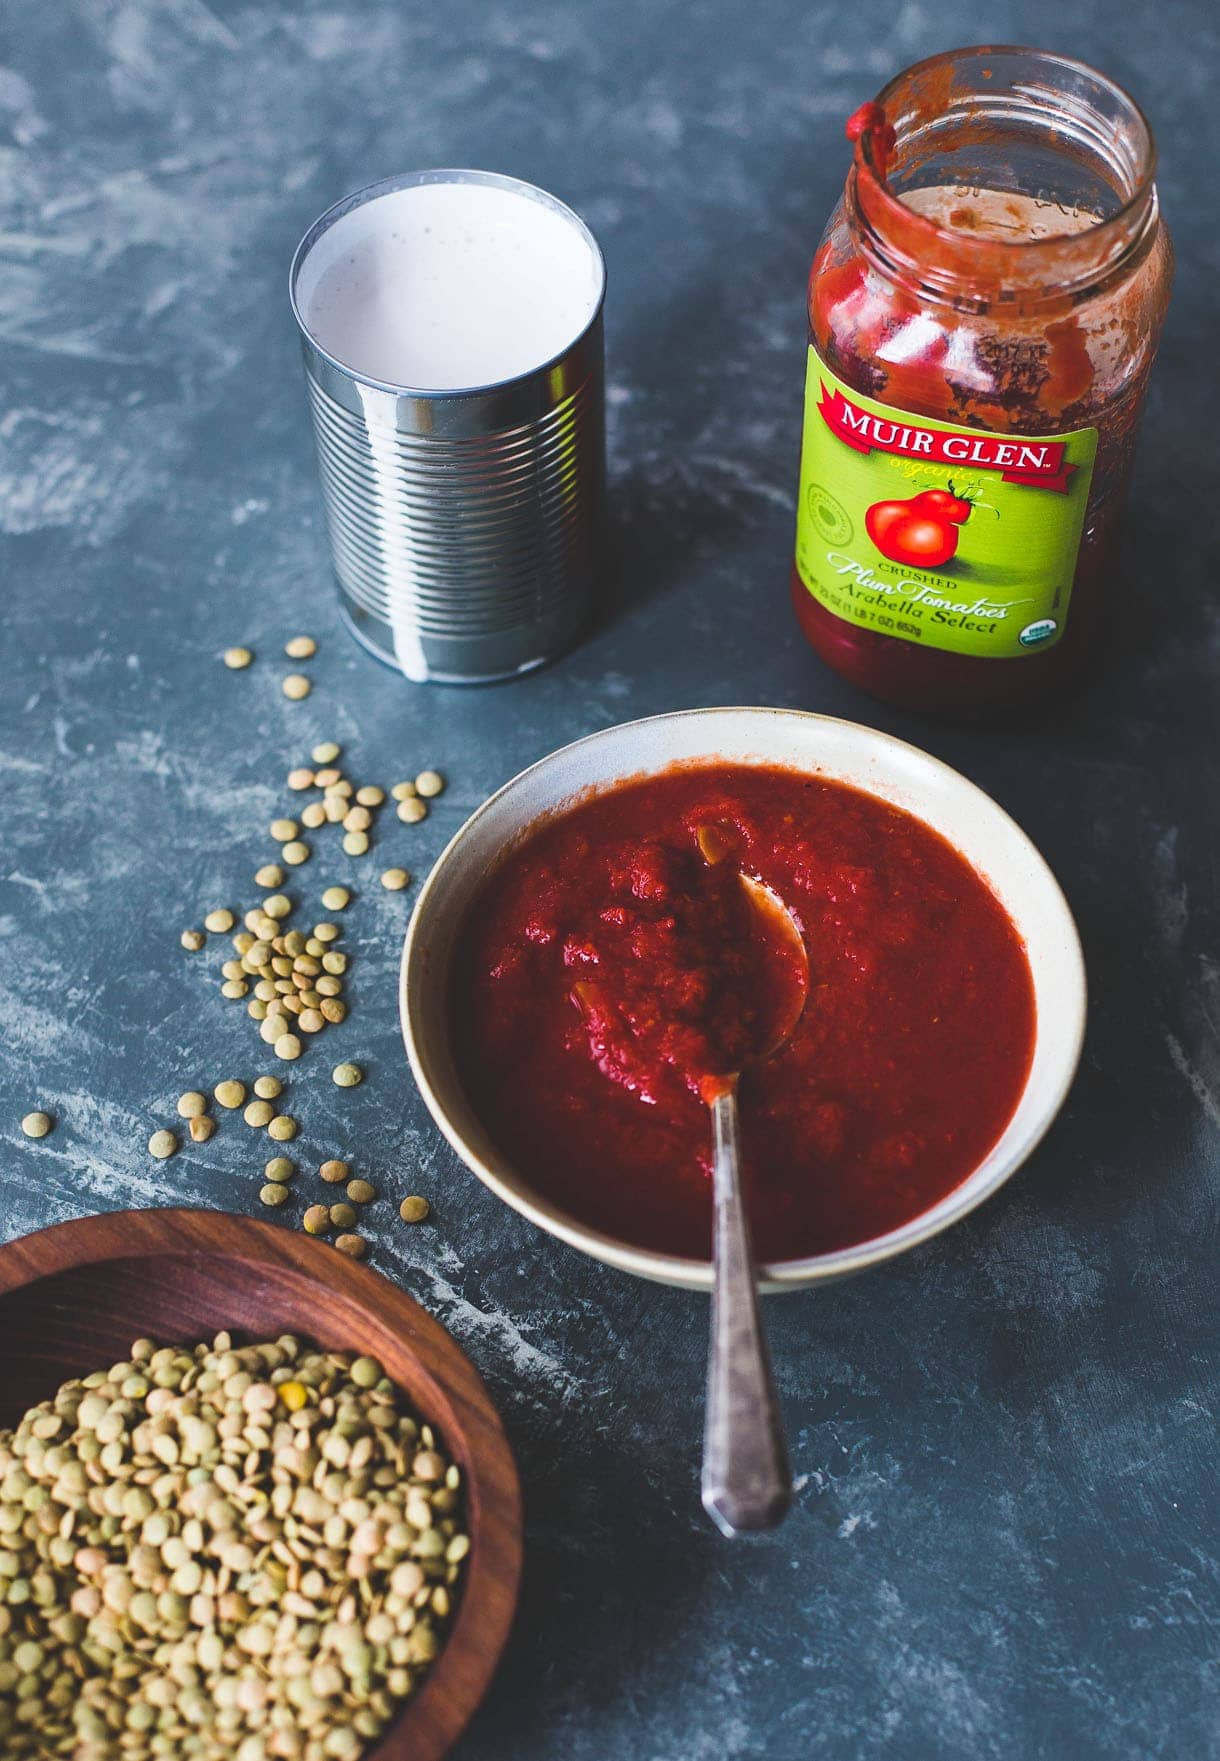 Smoky Tomato Lentils cooked in Coconut Milk {gluten-free, dairy-free}